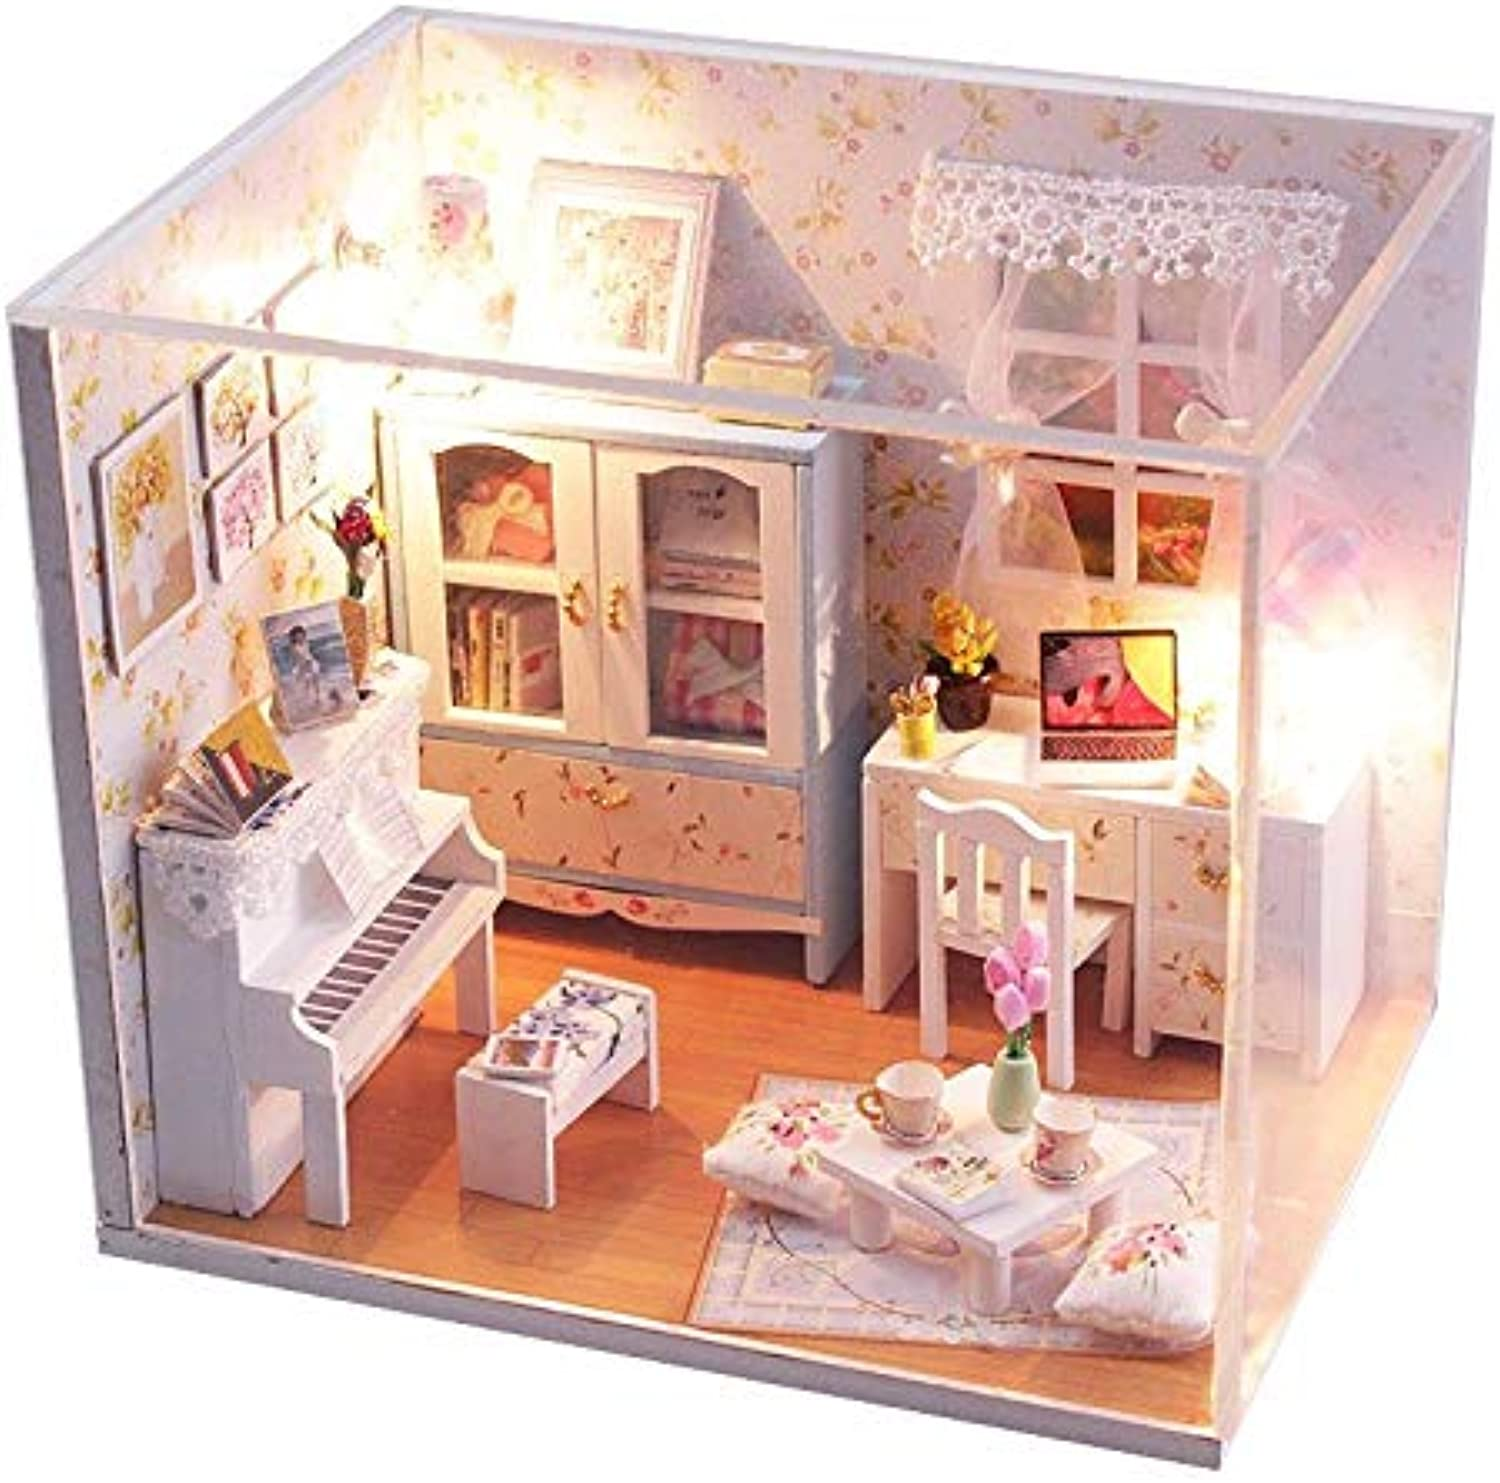 Global Brands Online Hoomeda DIY Wood Dollhouse Miniature With LED+Furniture+Cover